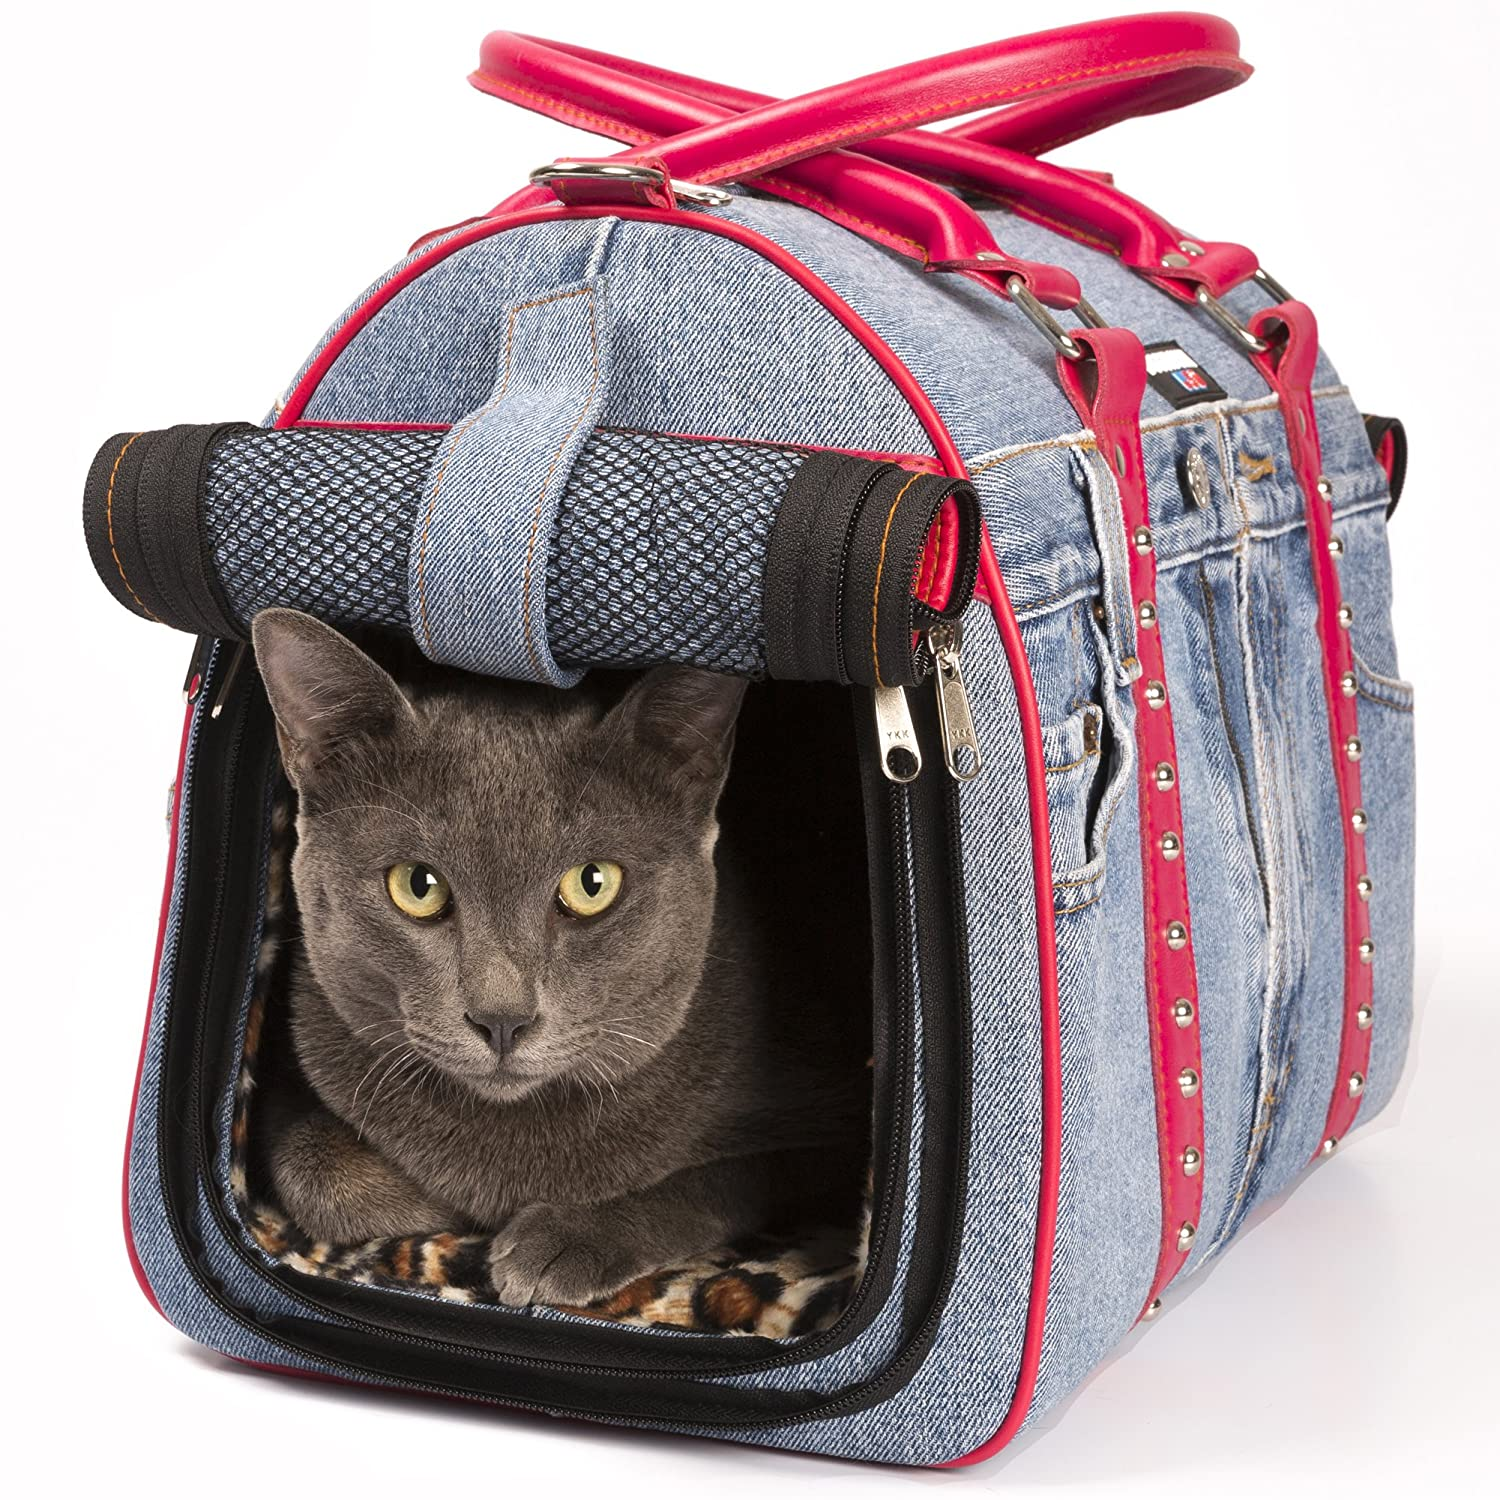 BEST DOG CARRIER – AFFORDABLE DESIGNER PET FASHION : Hand-Crafted Bag, Airline Under Seat Approved Carriers-All Airlines Medium & Small Pets *EXTRA SOFT* Car, Plane, Travel Purse, Tote, Bags for Cat & Dogs : MOST STYLISH & CHIC HANDBAG FOR THE MONEY!